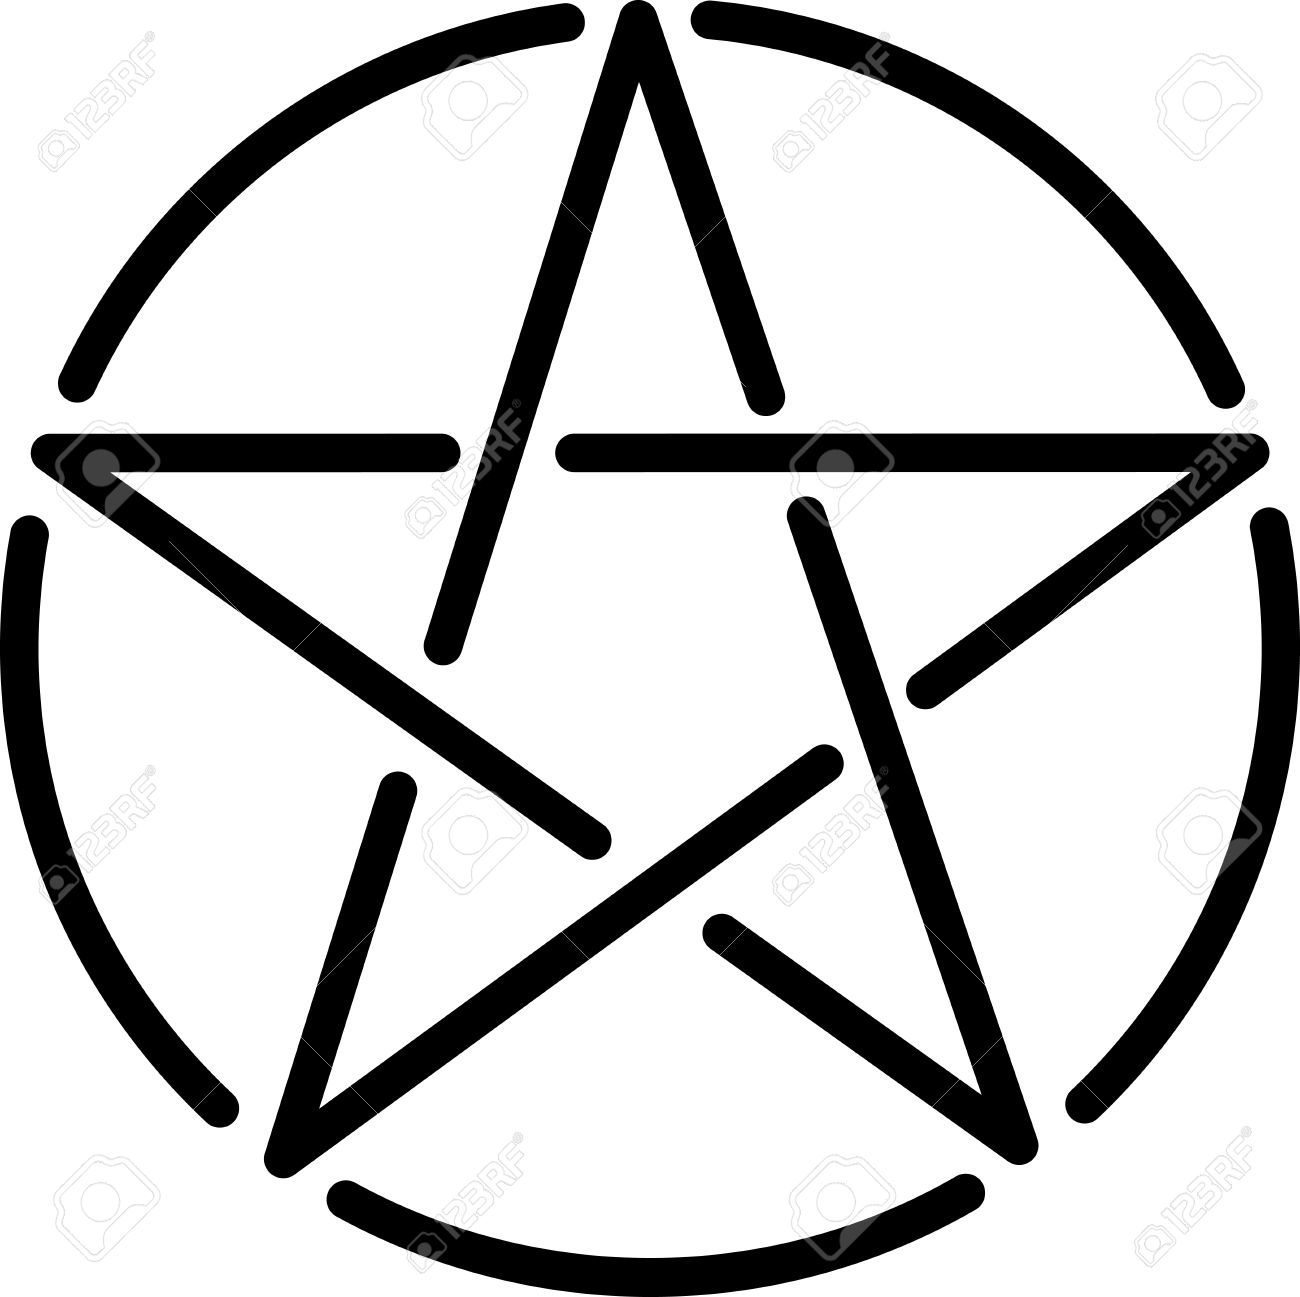 Wicca pagan witch religious symbol logo icon star wicca pagan witch religious symbol logo icon star buycottarizona